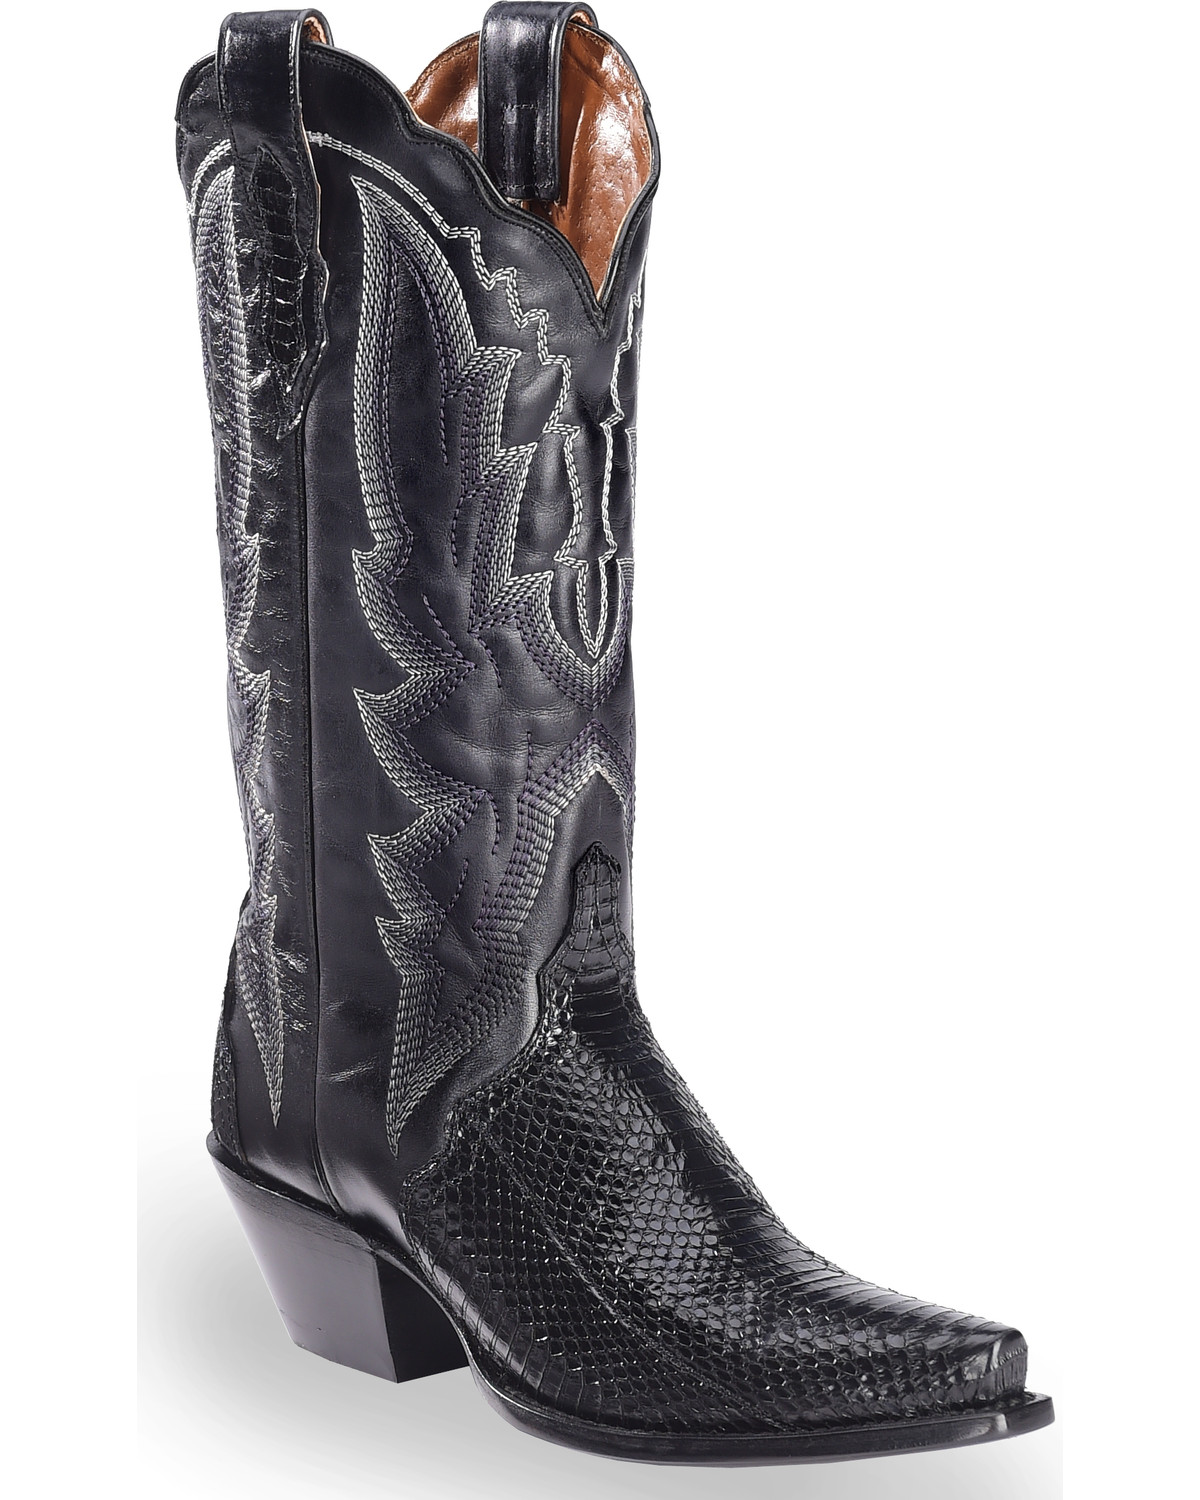 f97ac718a0f Dan Post Women's Black Water Snake Triad Cowgirl Boots - Snip Toe